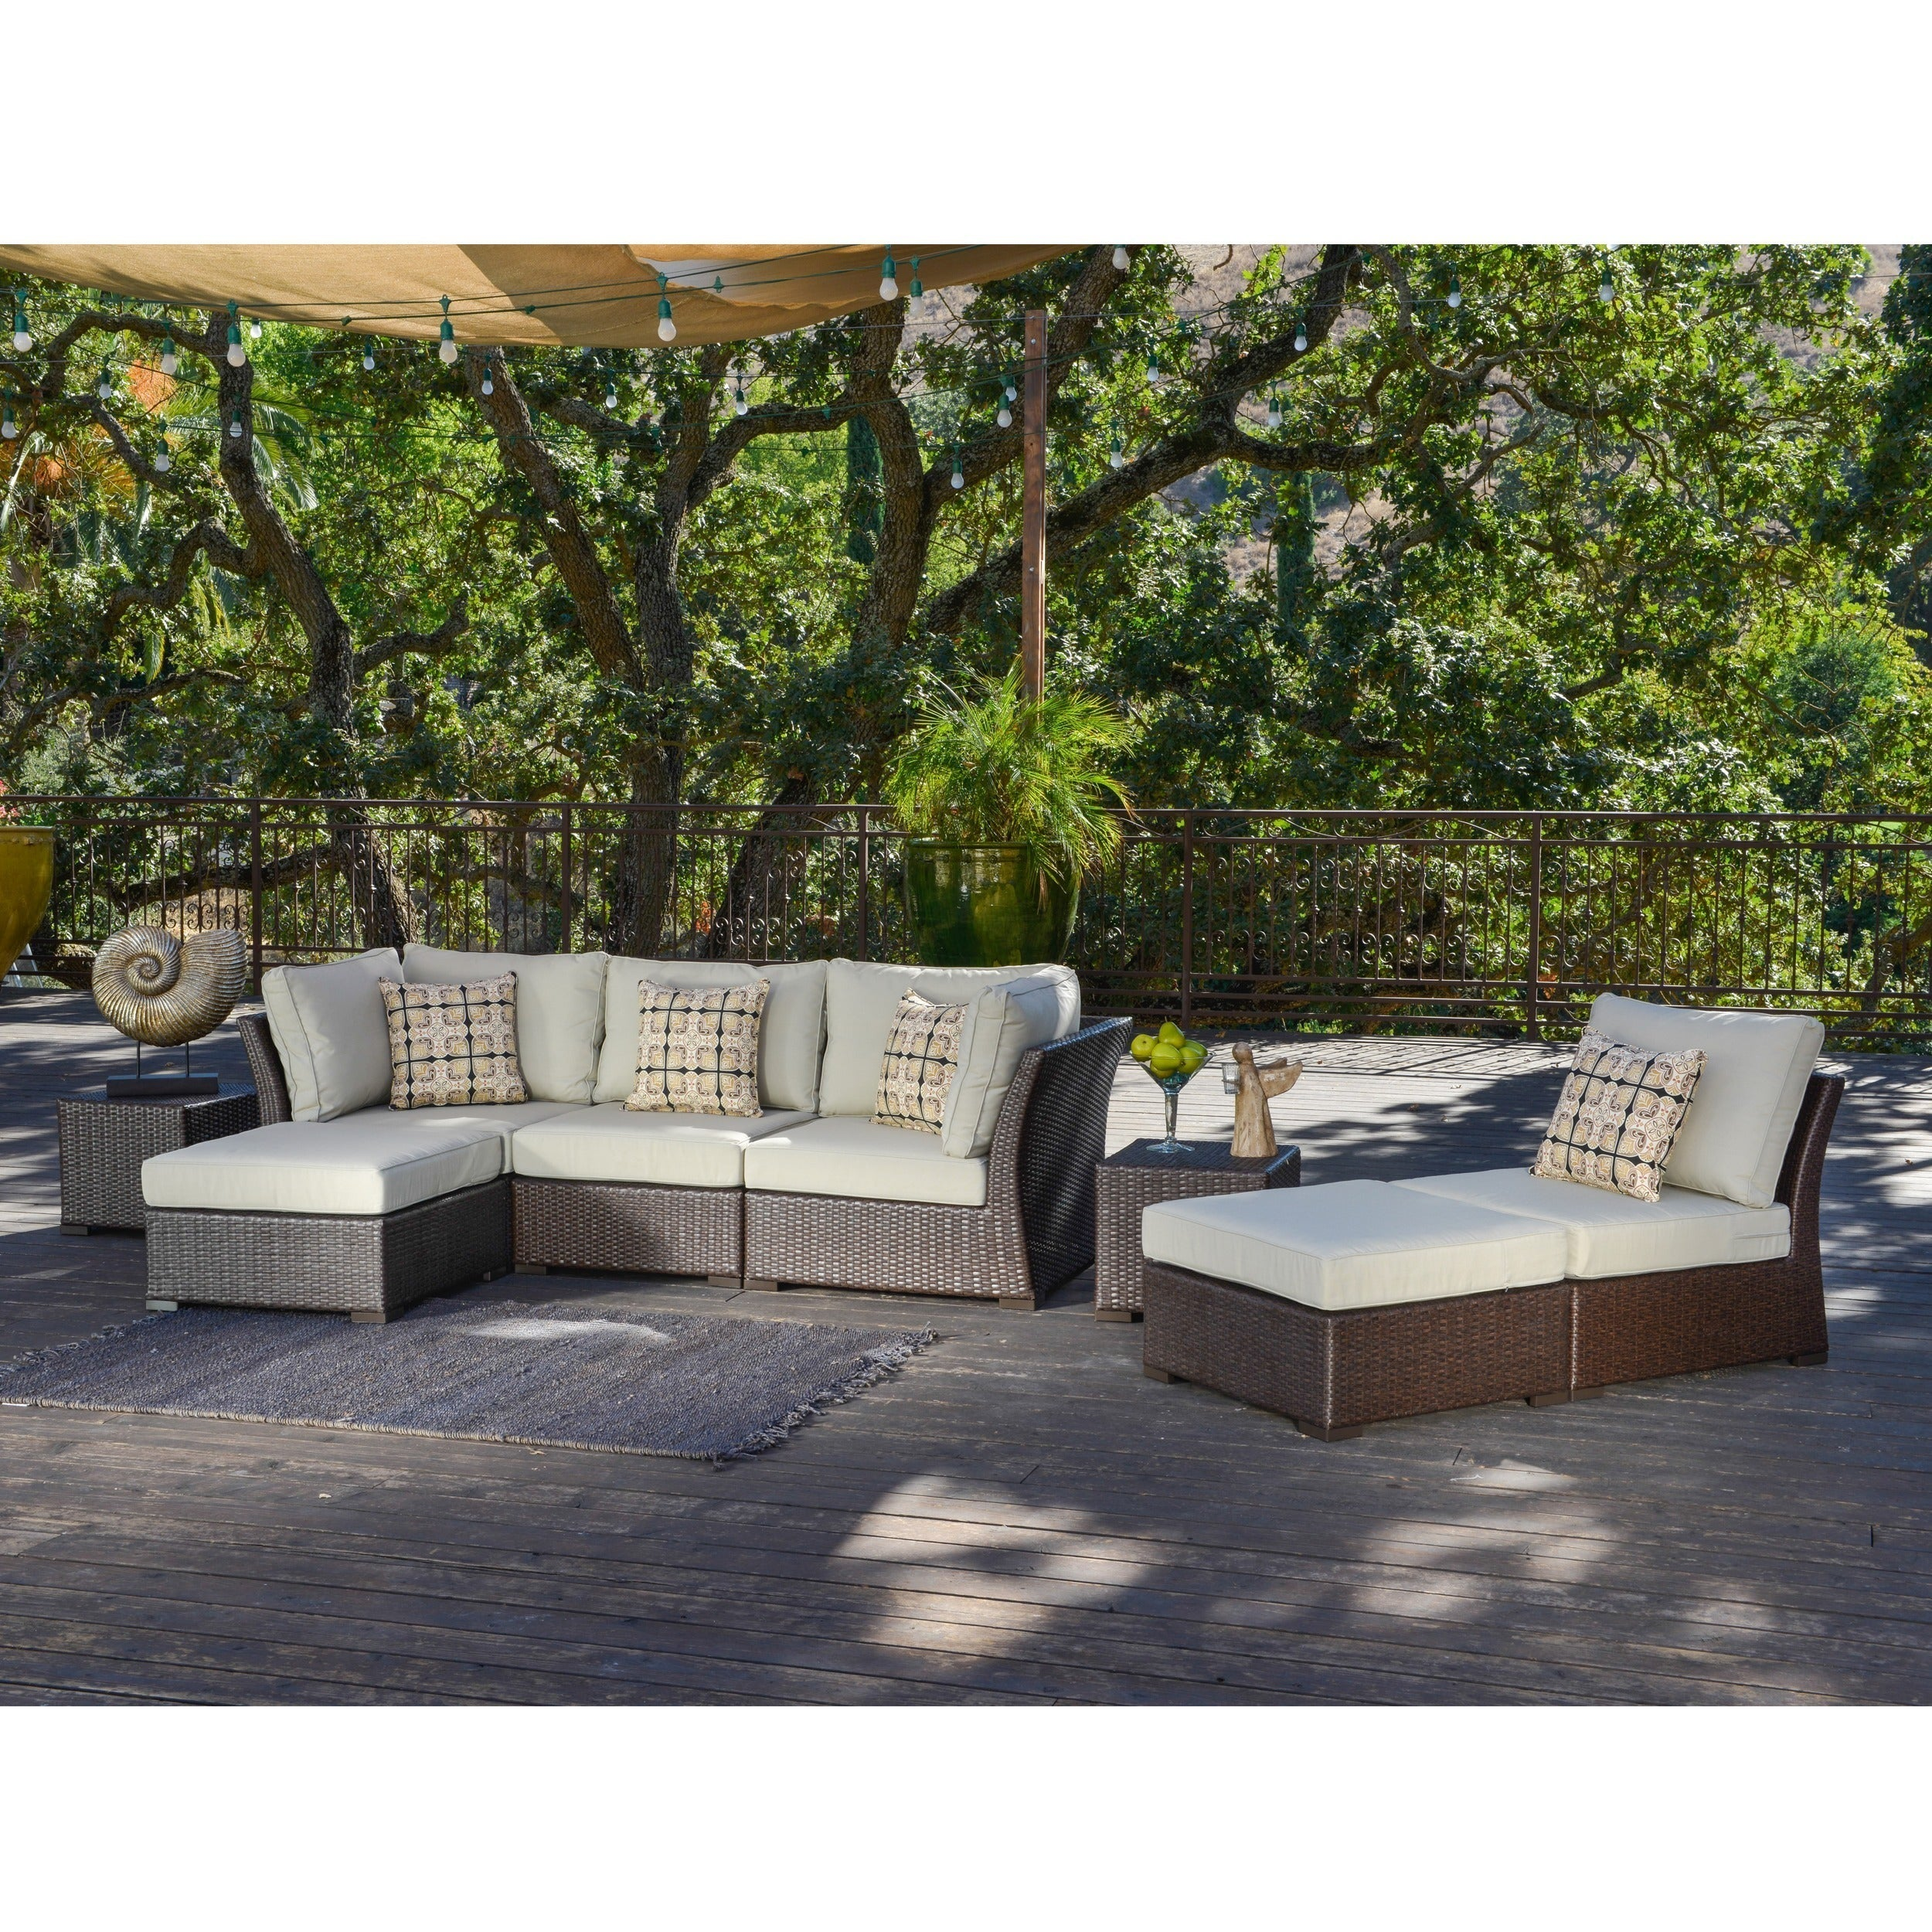 Corvus Oreanne 8-piece Brown Wicker Patio Furniture Set - Free ...